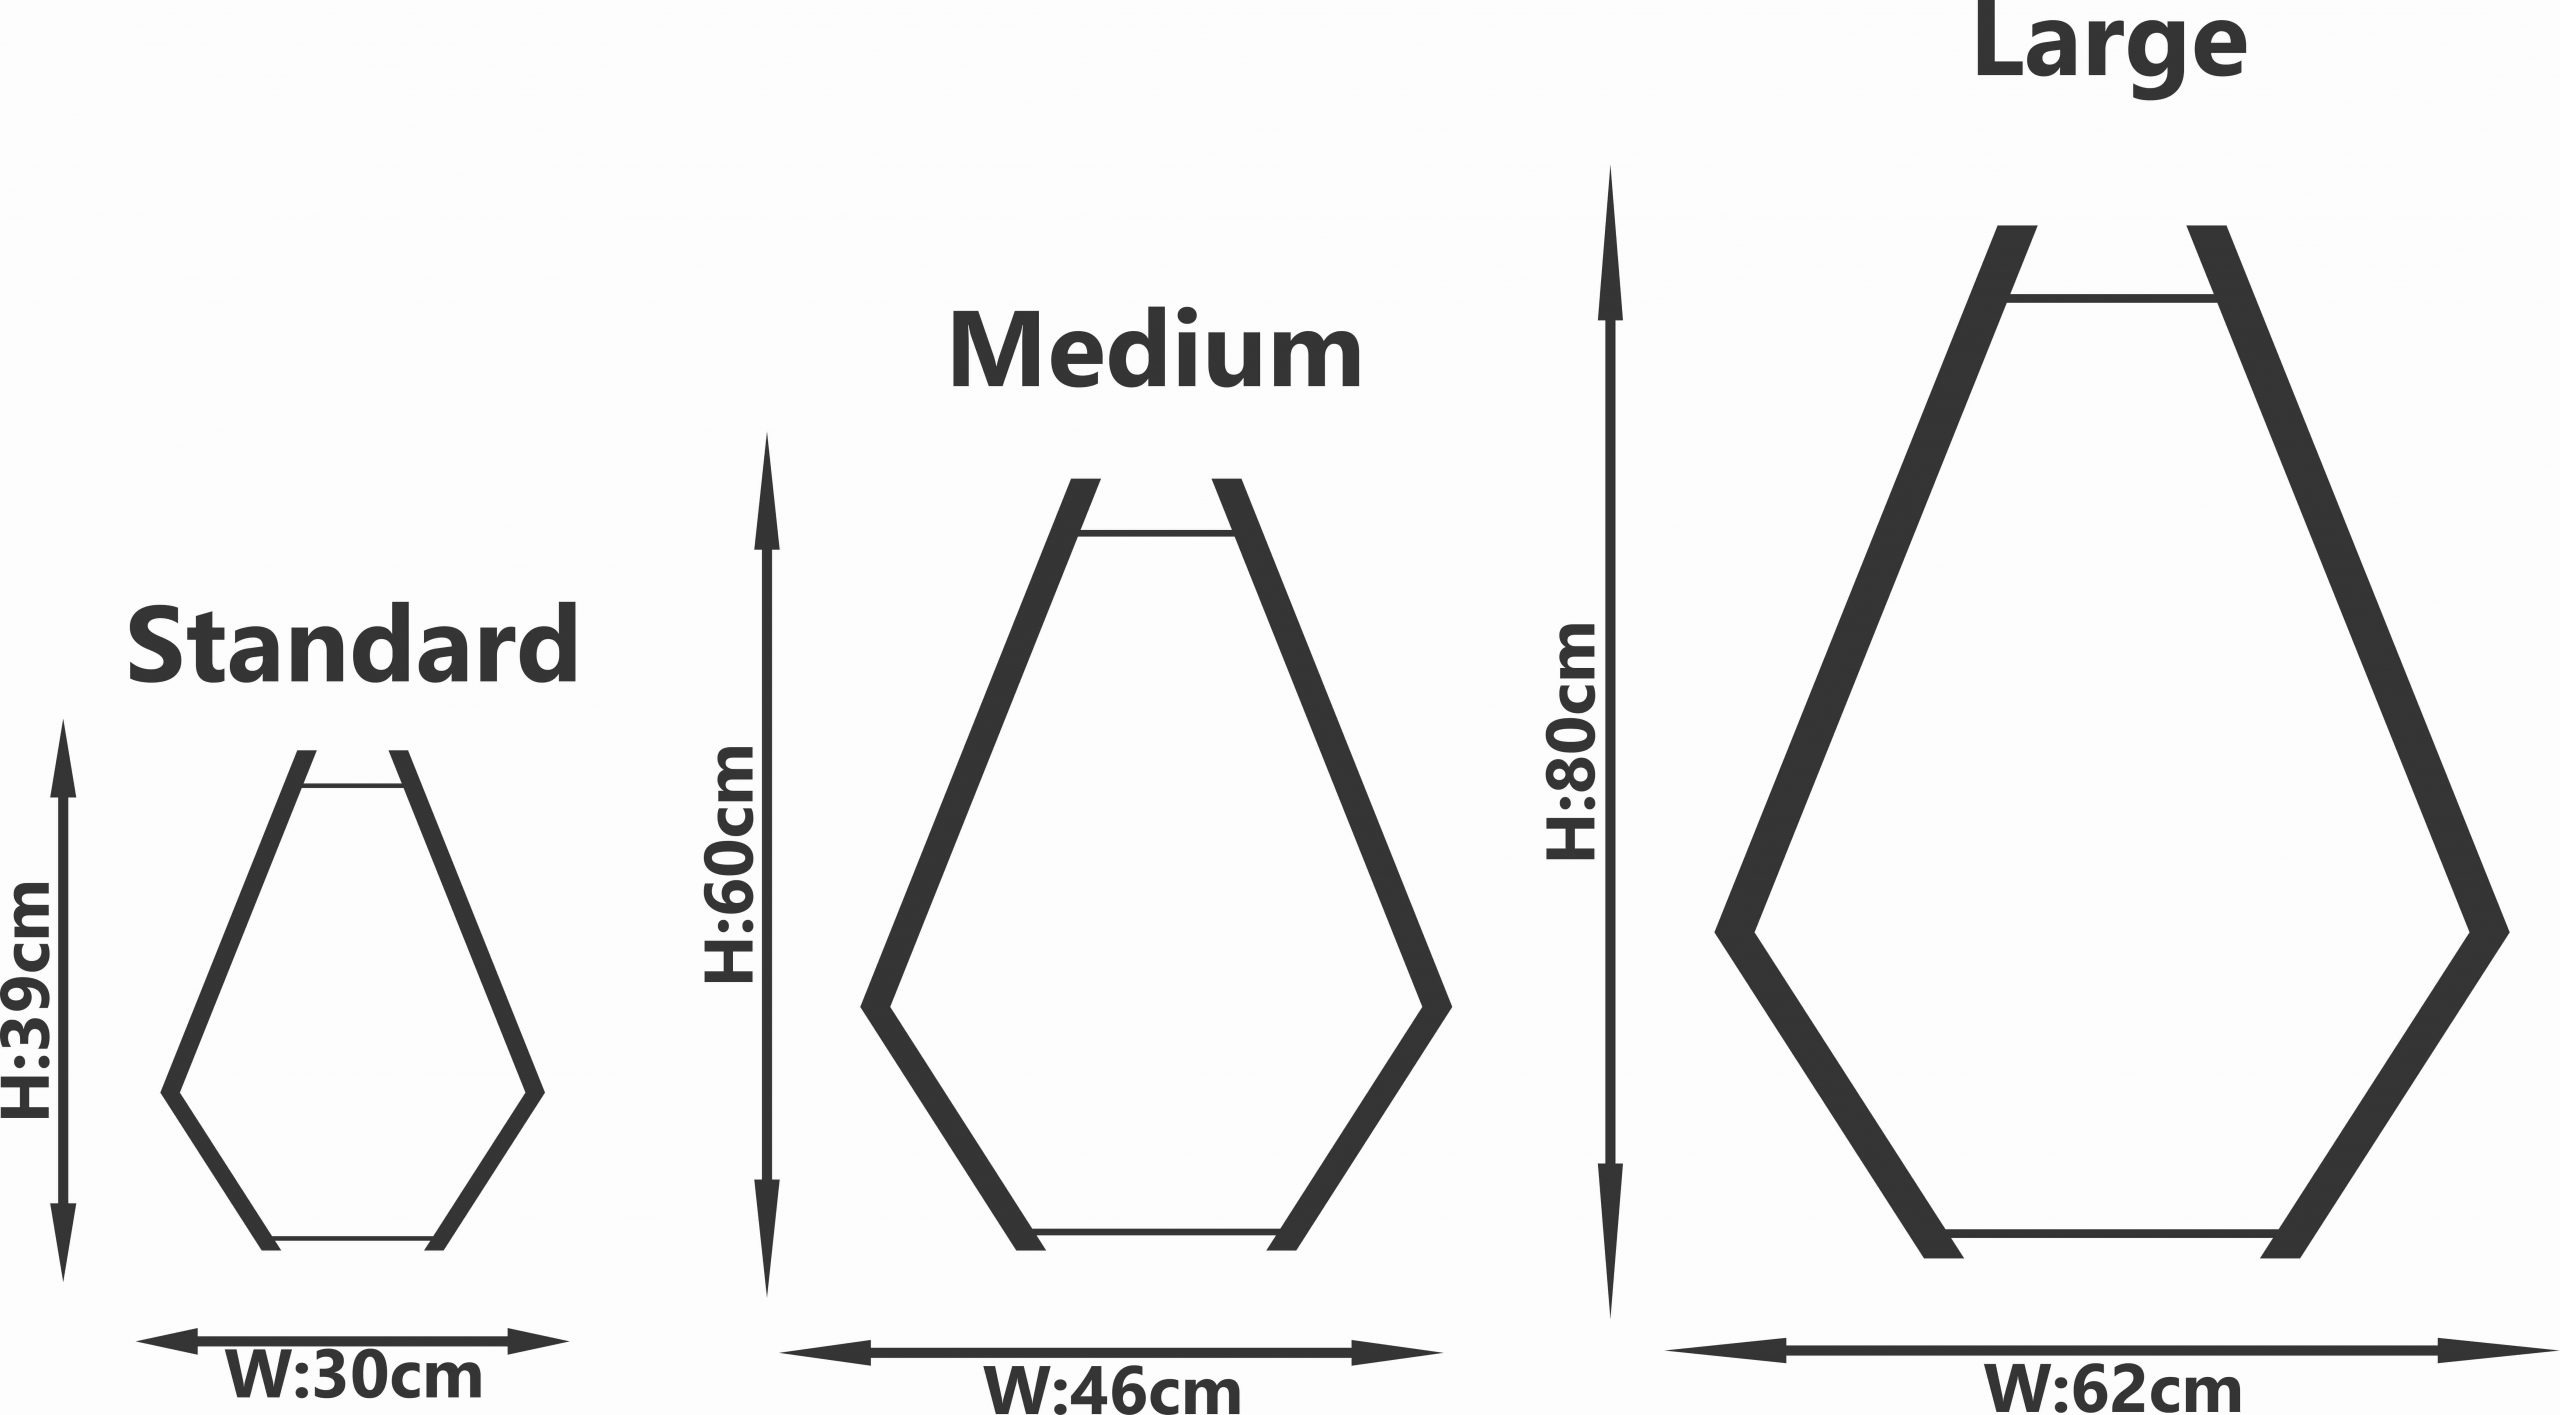 Diagram showing the 3 variations in size of 'The Tokai' wooden pendant light